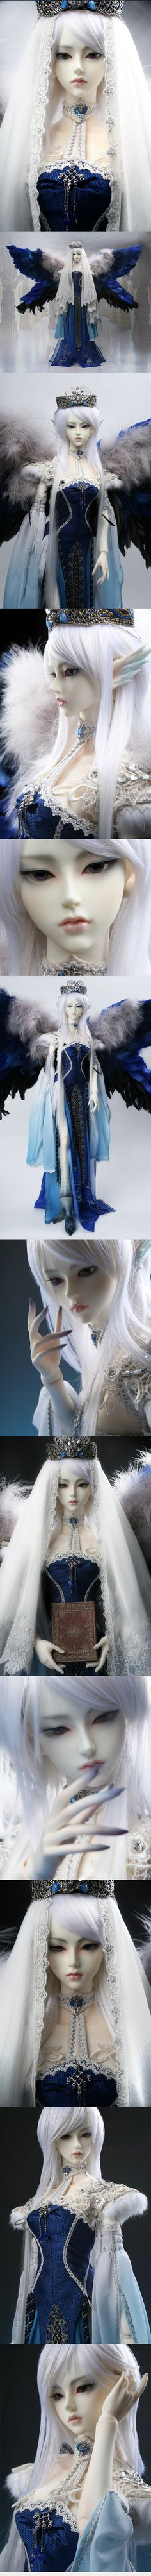 Clozel - Vala of Agony [Clozel] - $228.00 : BJD baby,bjd dolls,bjd doll shop,bjd bragan?a,fairyland,volks bjd,soom,luts bjd,Super Dollfie, BJD lovers collect community